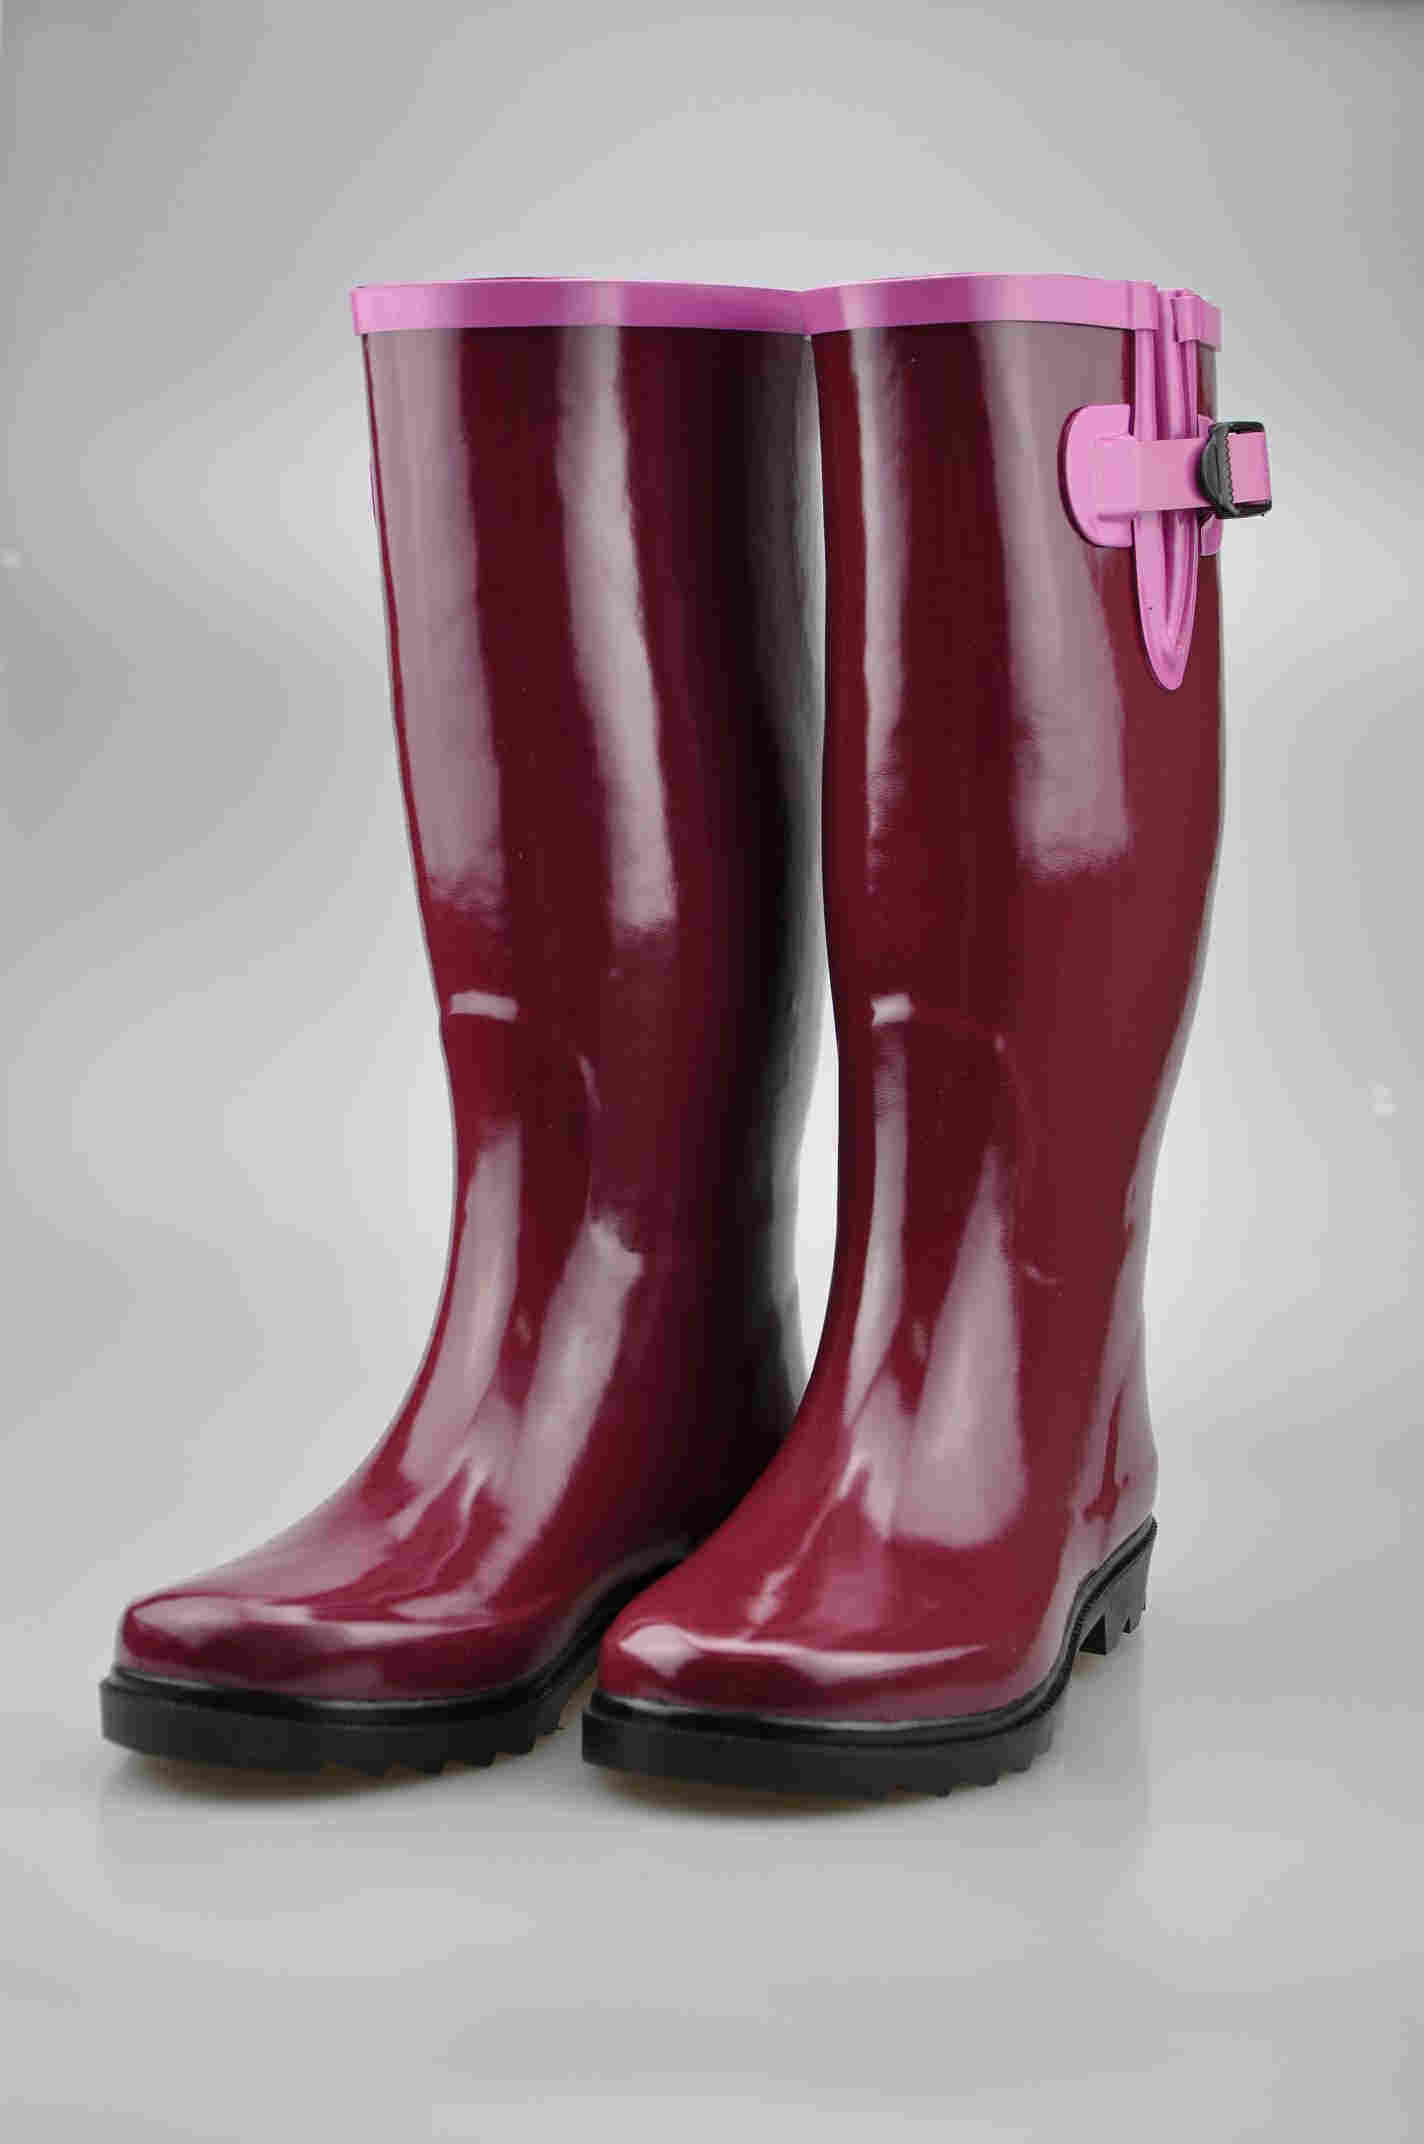 Fashionable Rain Boots For Women - Boot Hto